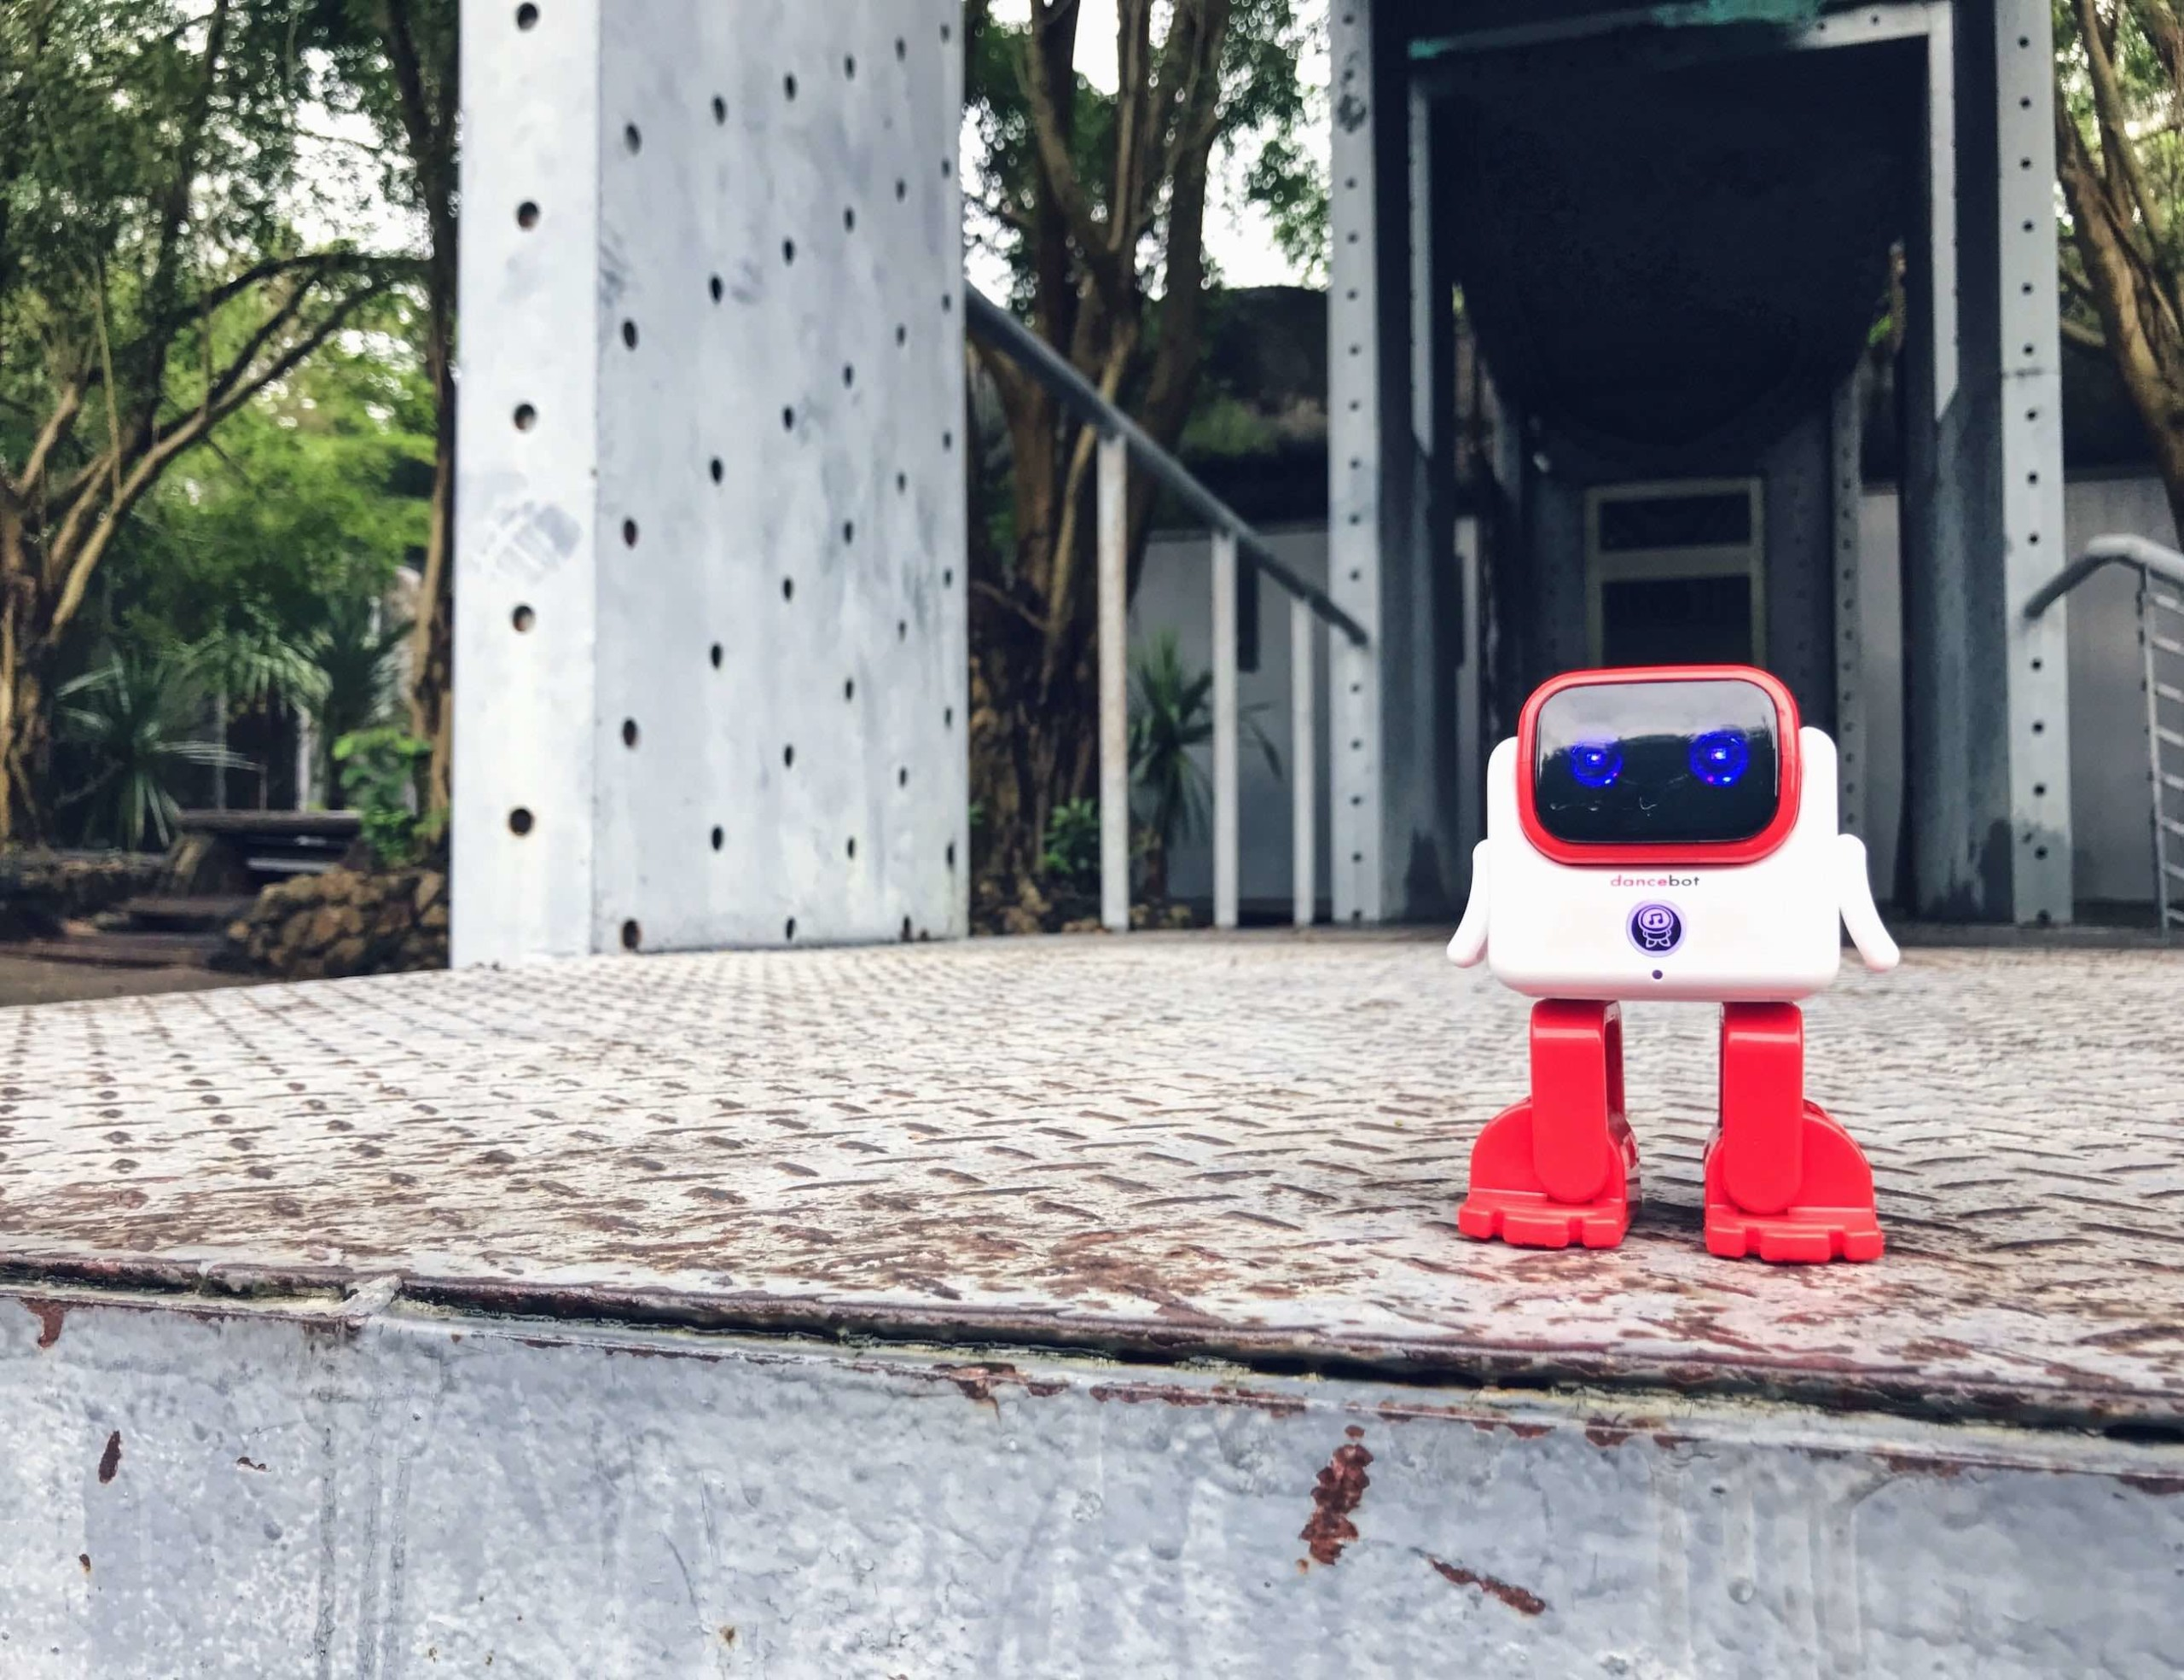 Dancebot Smart Dancing Robot Speaker